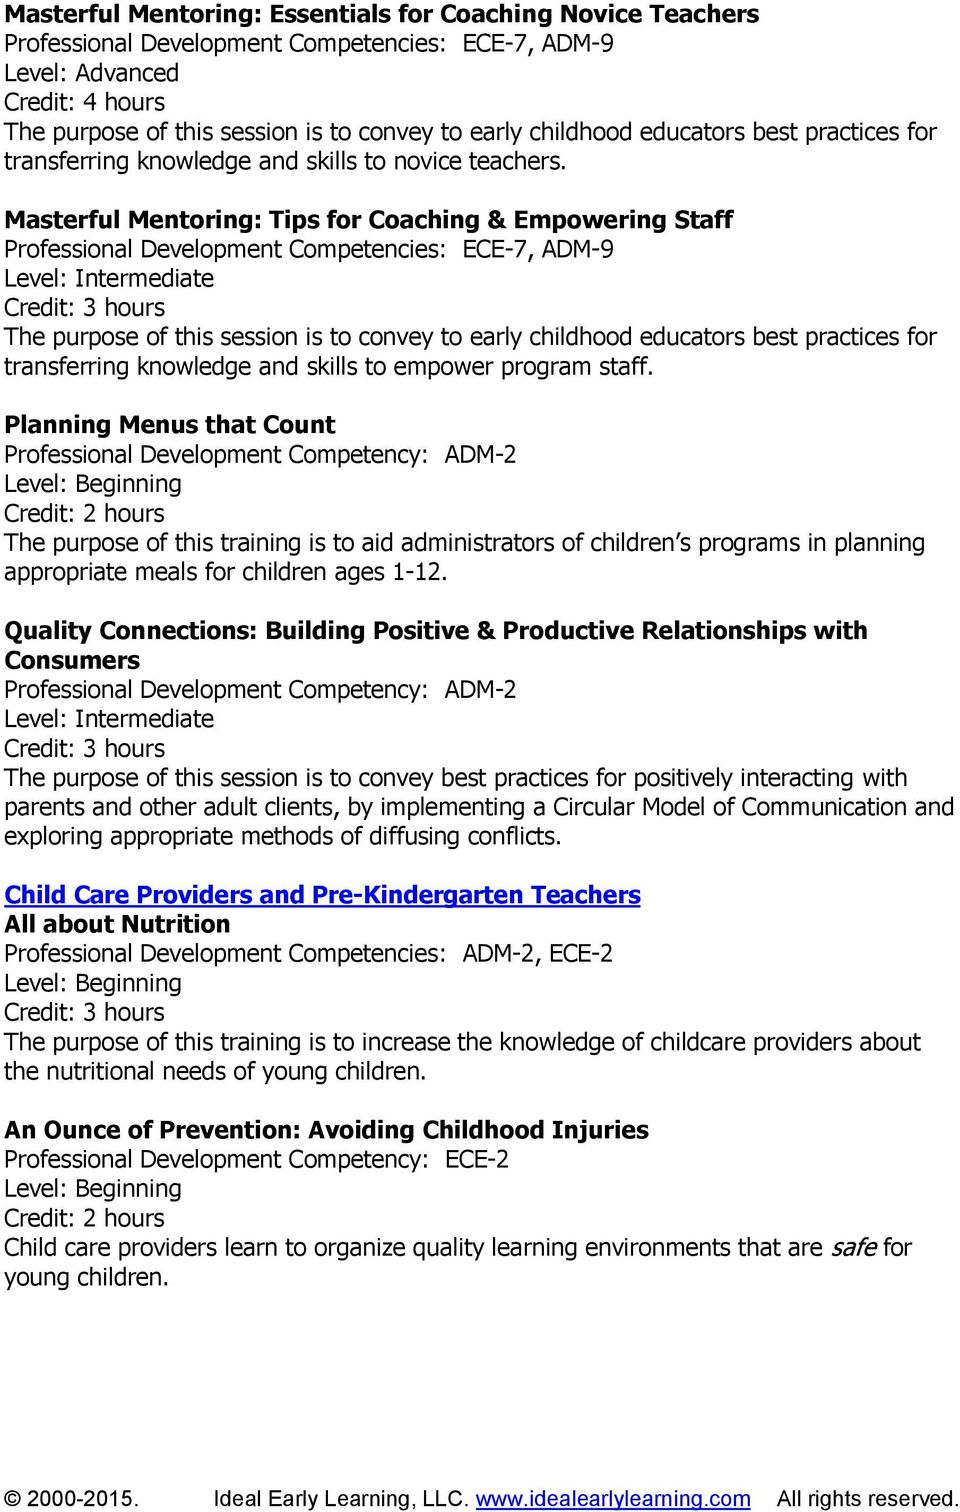 Masterful Mentoring: Tips for Coaching & Empowering Staff Professional Development Competencies: ECE-7, ADM-9 The purpose of this session is to convey to early childhood educators best practices for